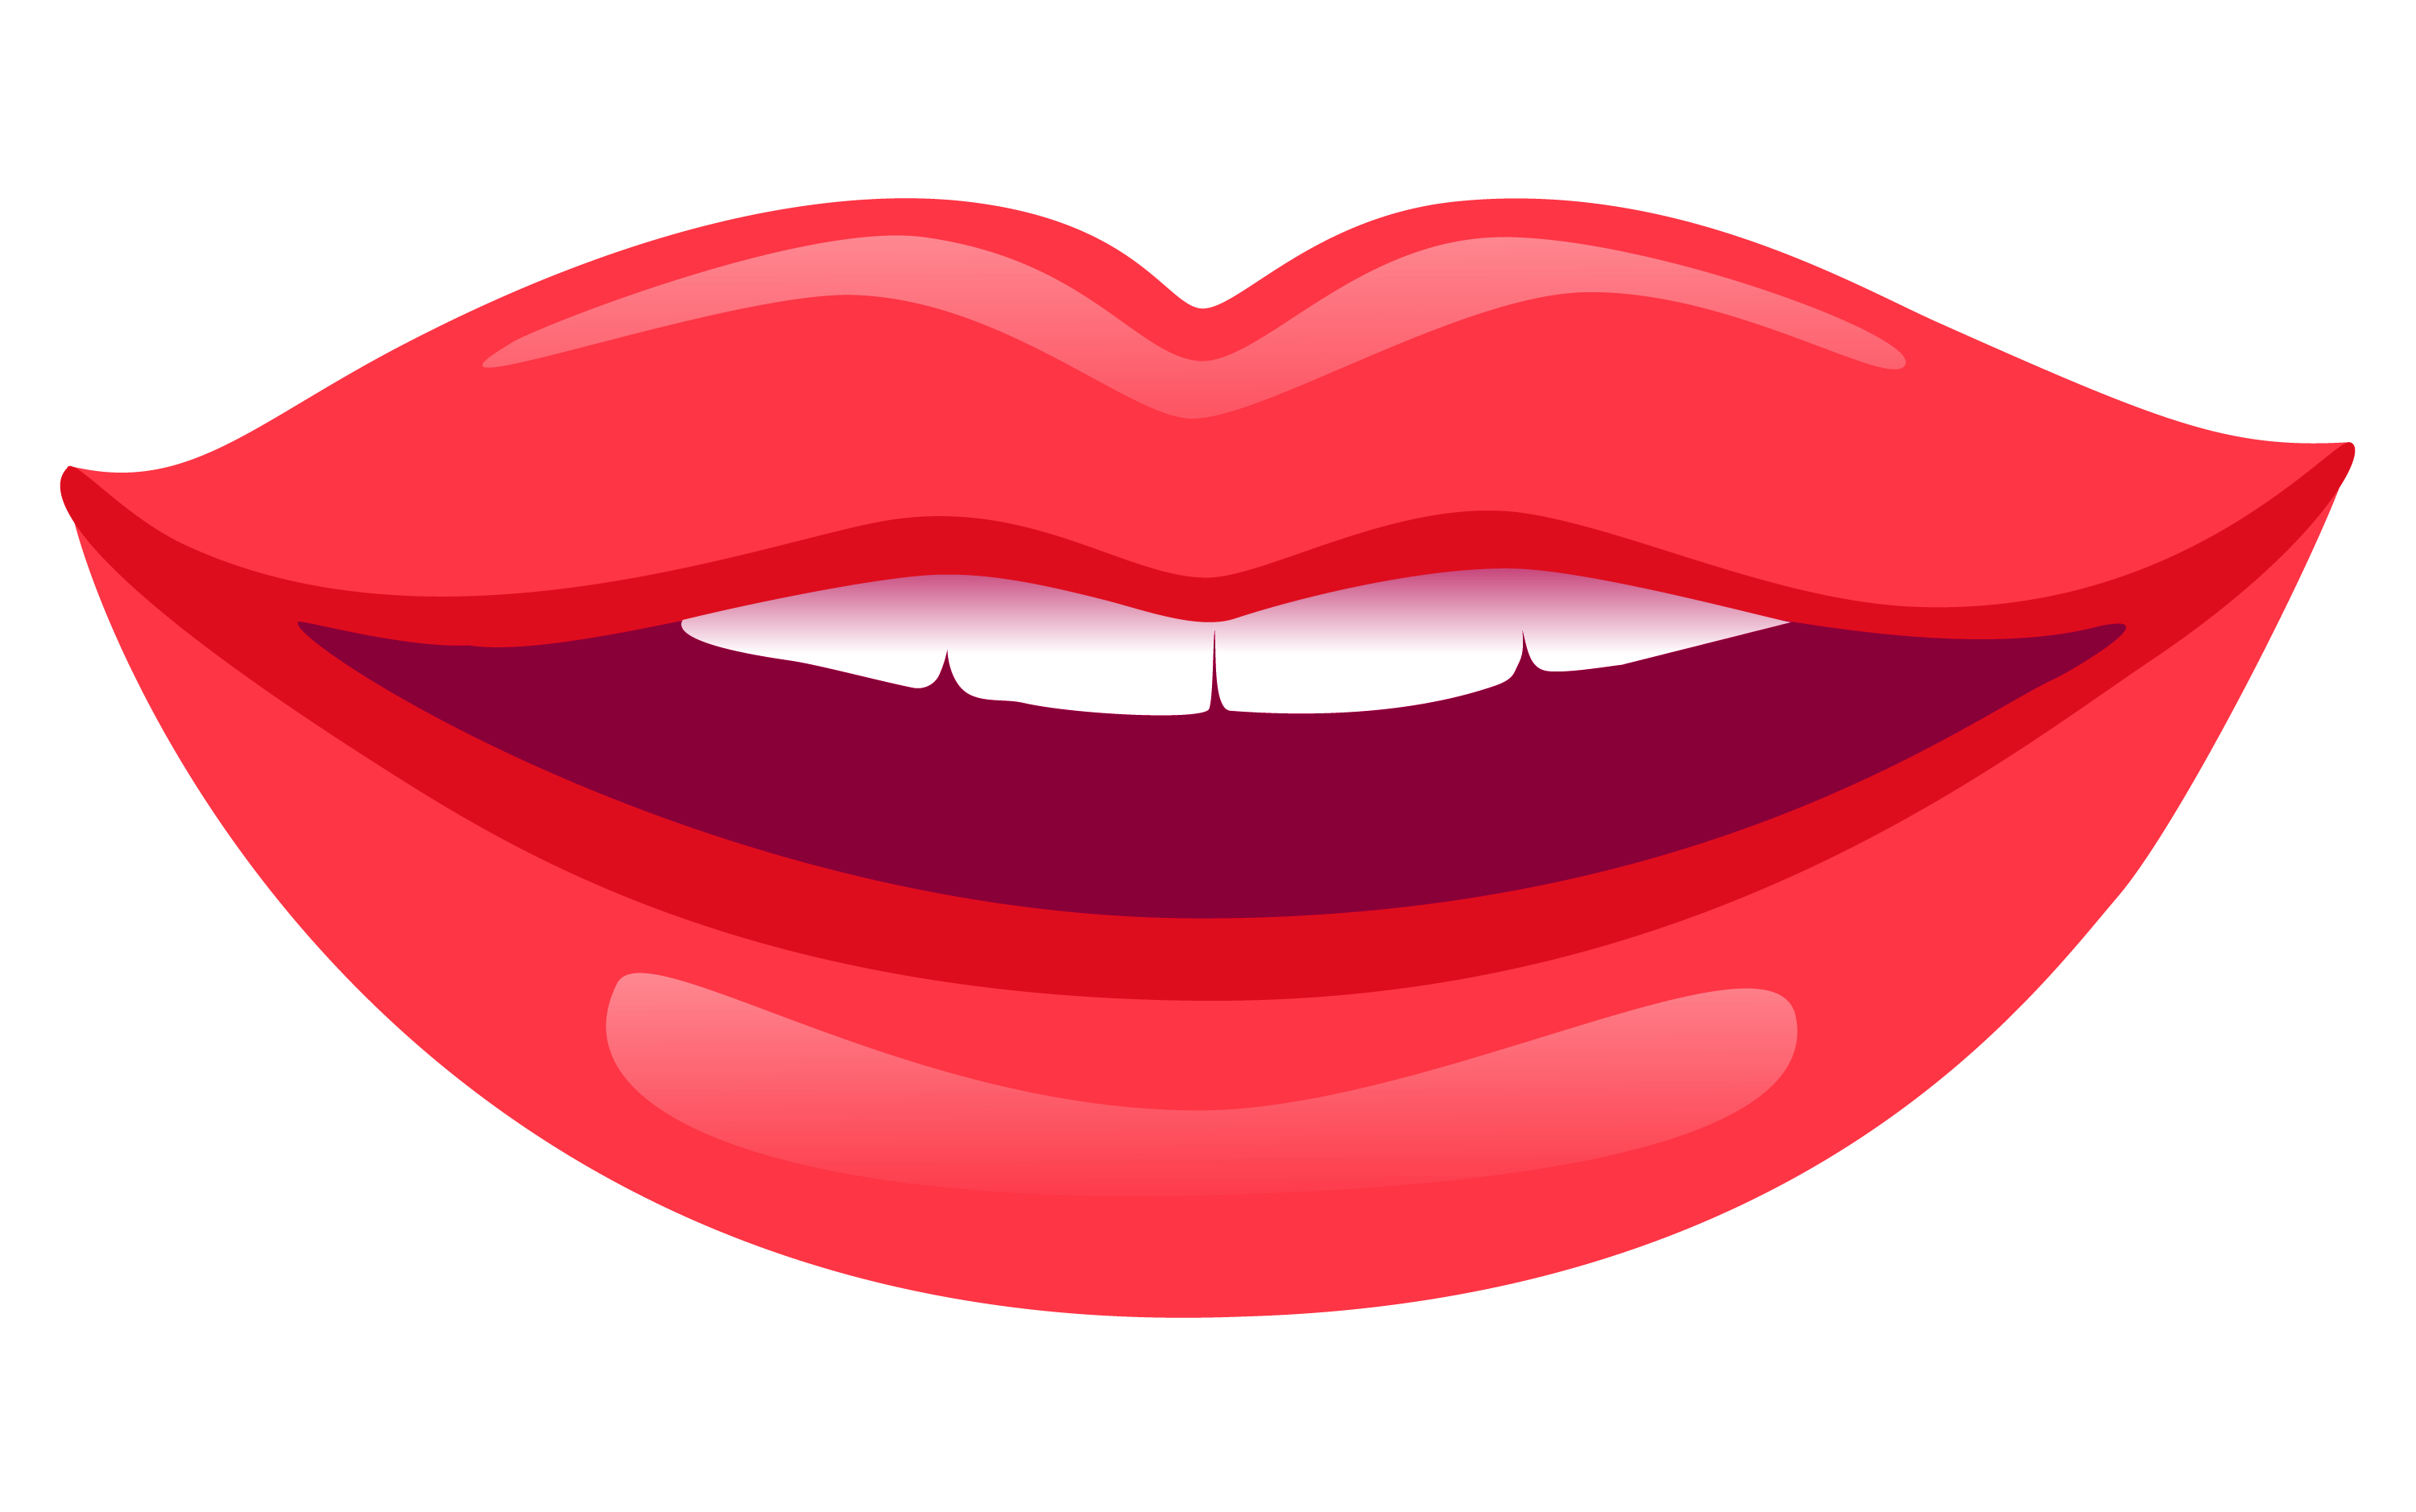 Lips png image pngpix. Chin clipart transparent graphic freeuse library